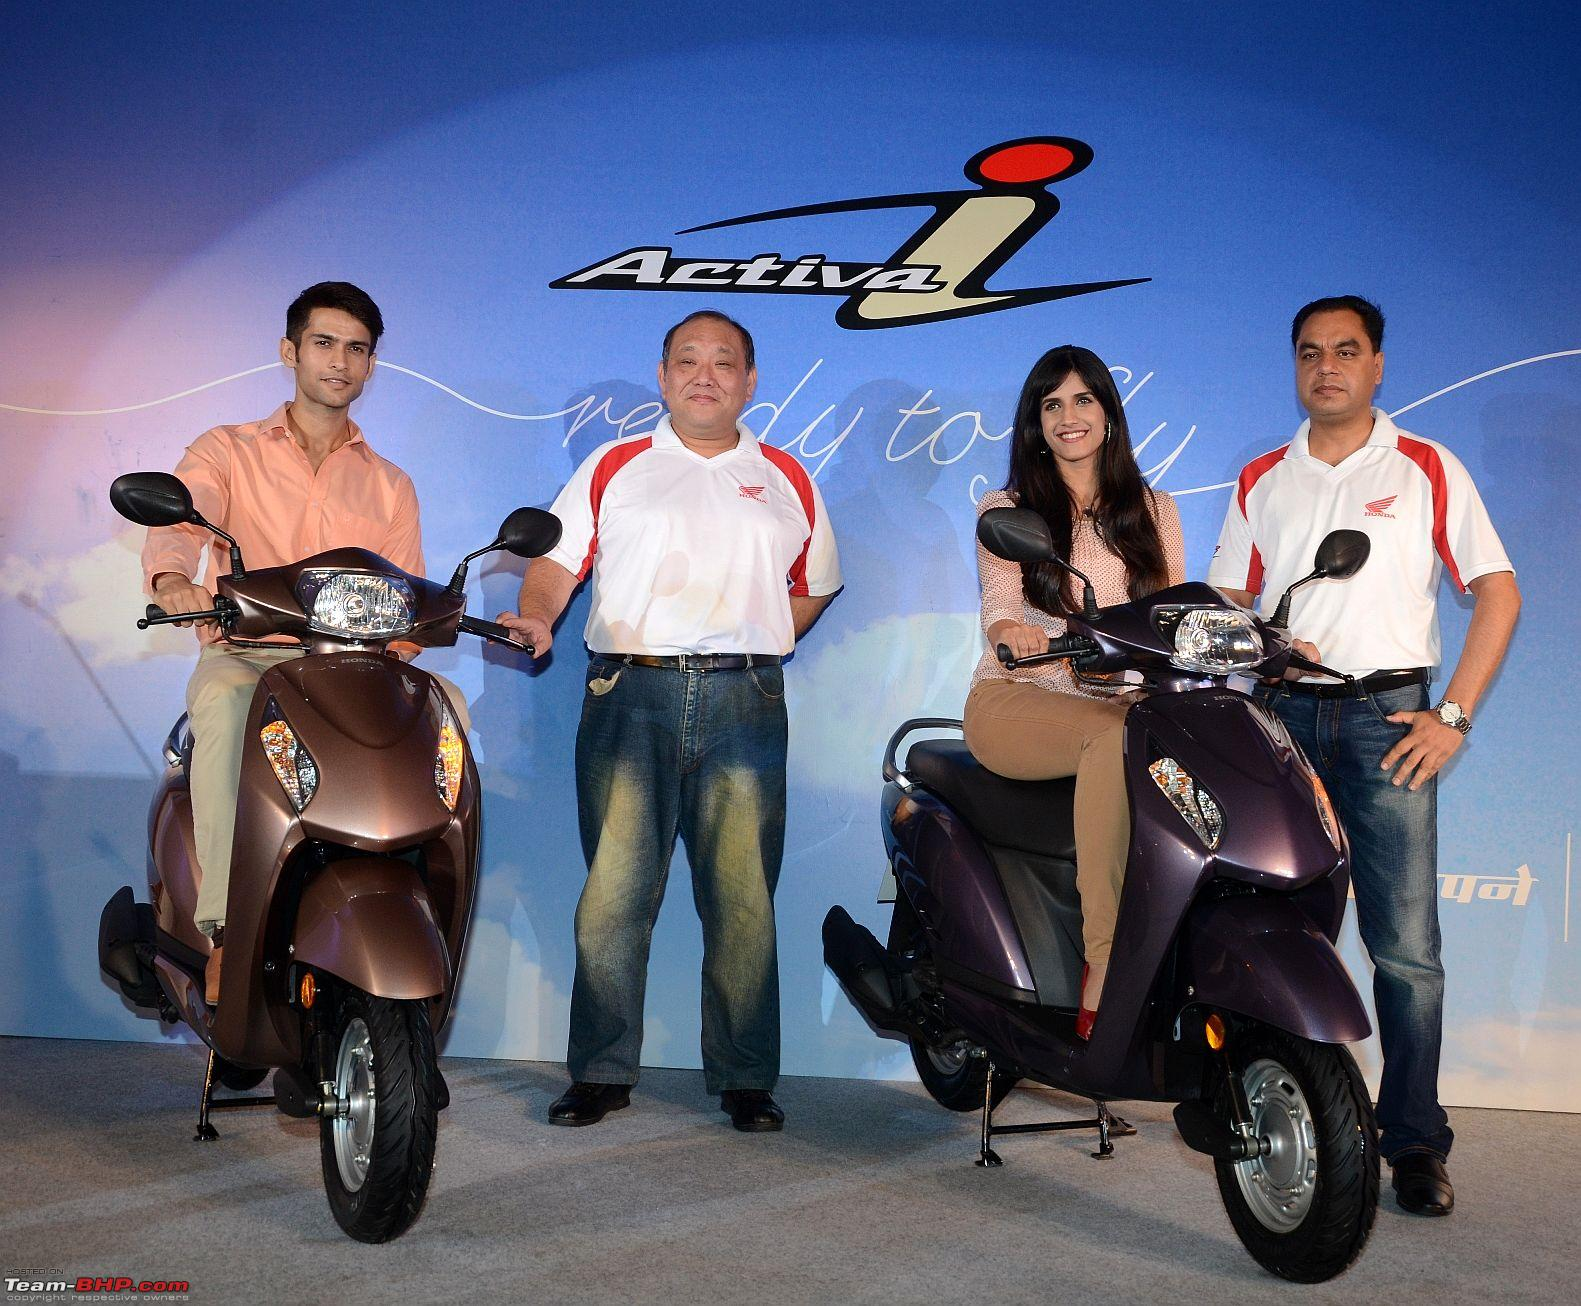 Honda Activa I Launched In India At A Price Of 44200 Ex Showroom